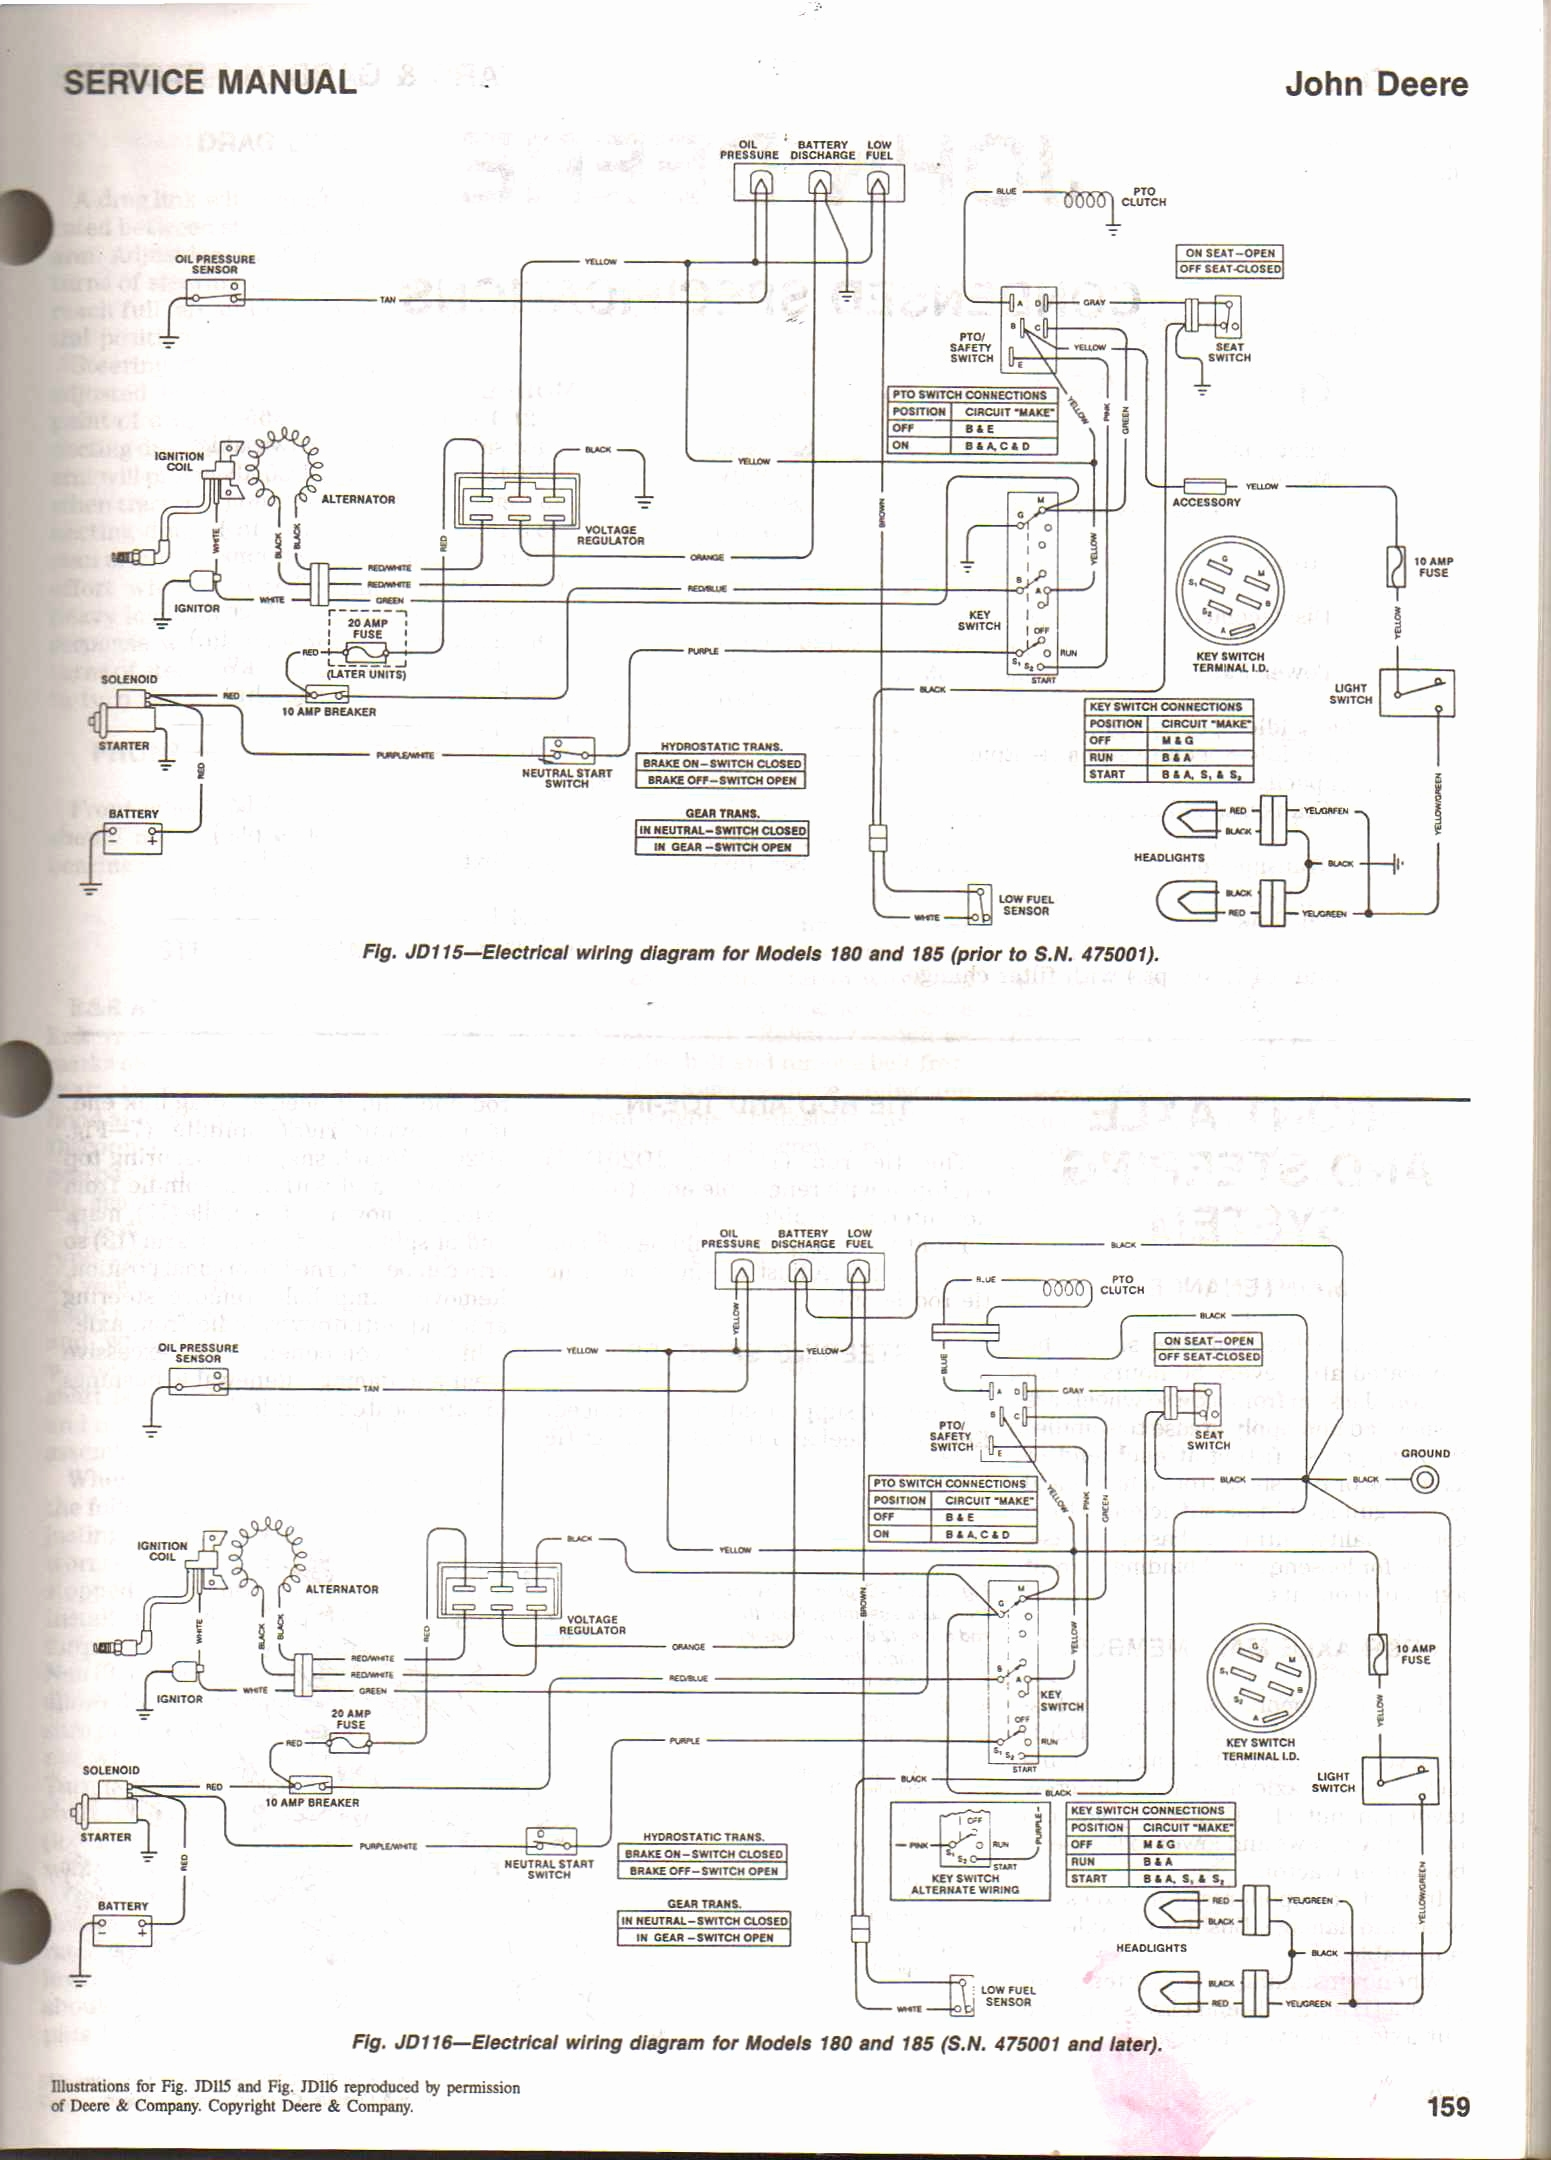 john deere l130 wiring diagram free wiring diagram John Deere Ignition Switch Diagram